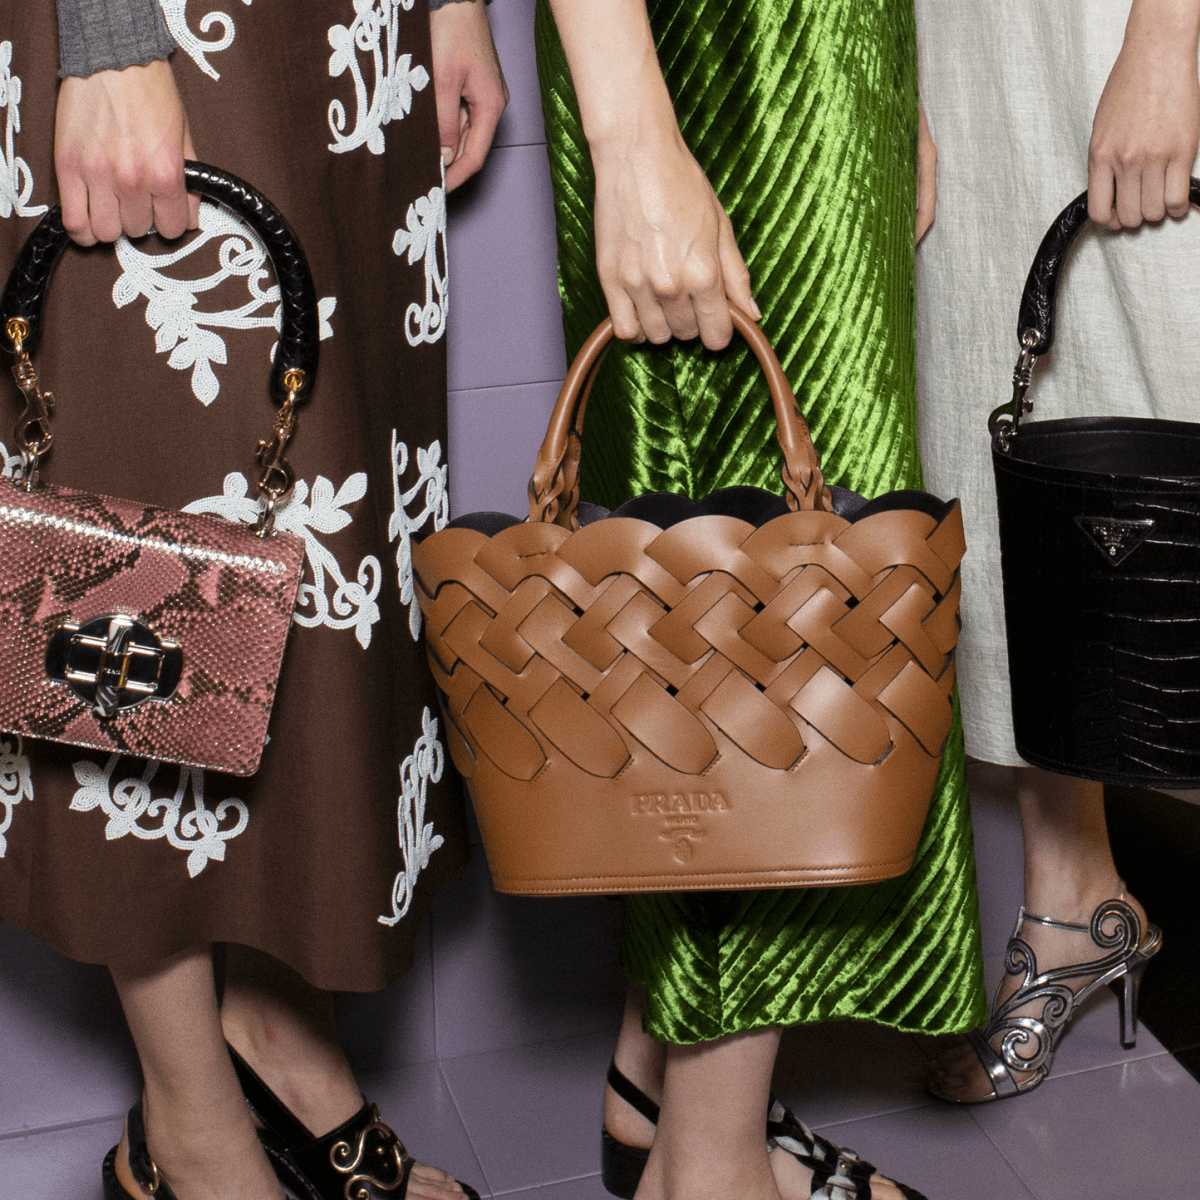 Bags From The Milan Spring 2020